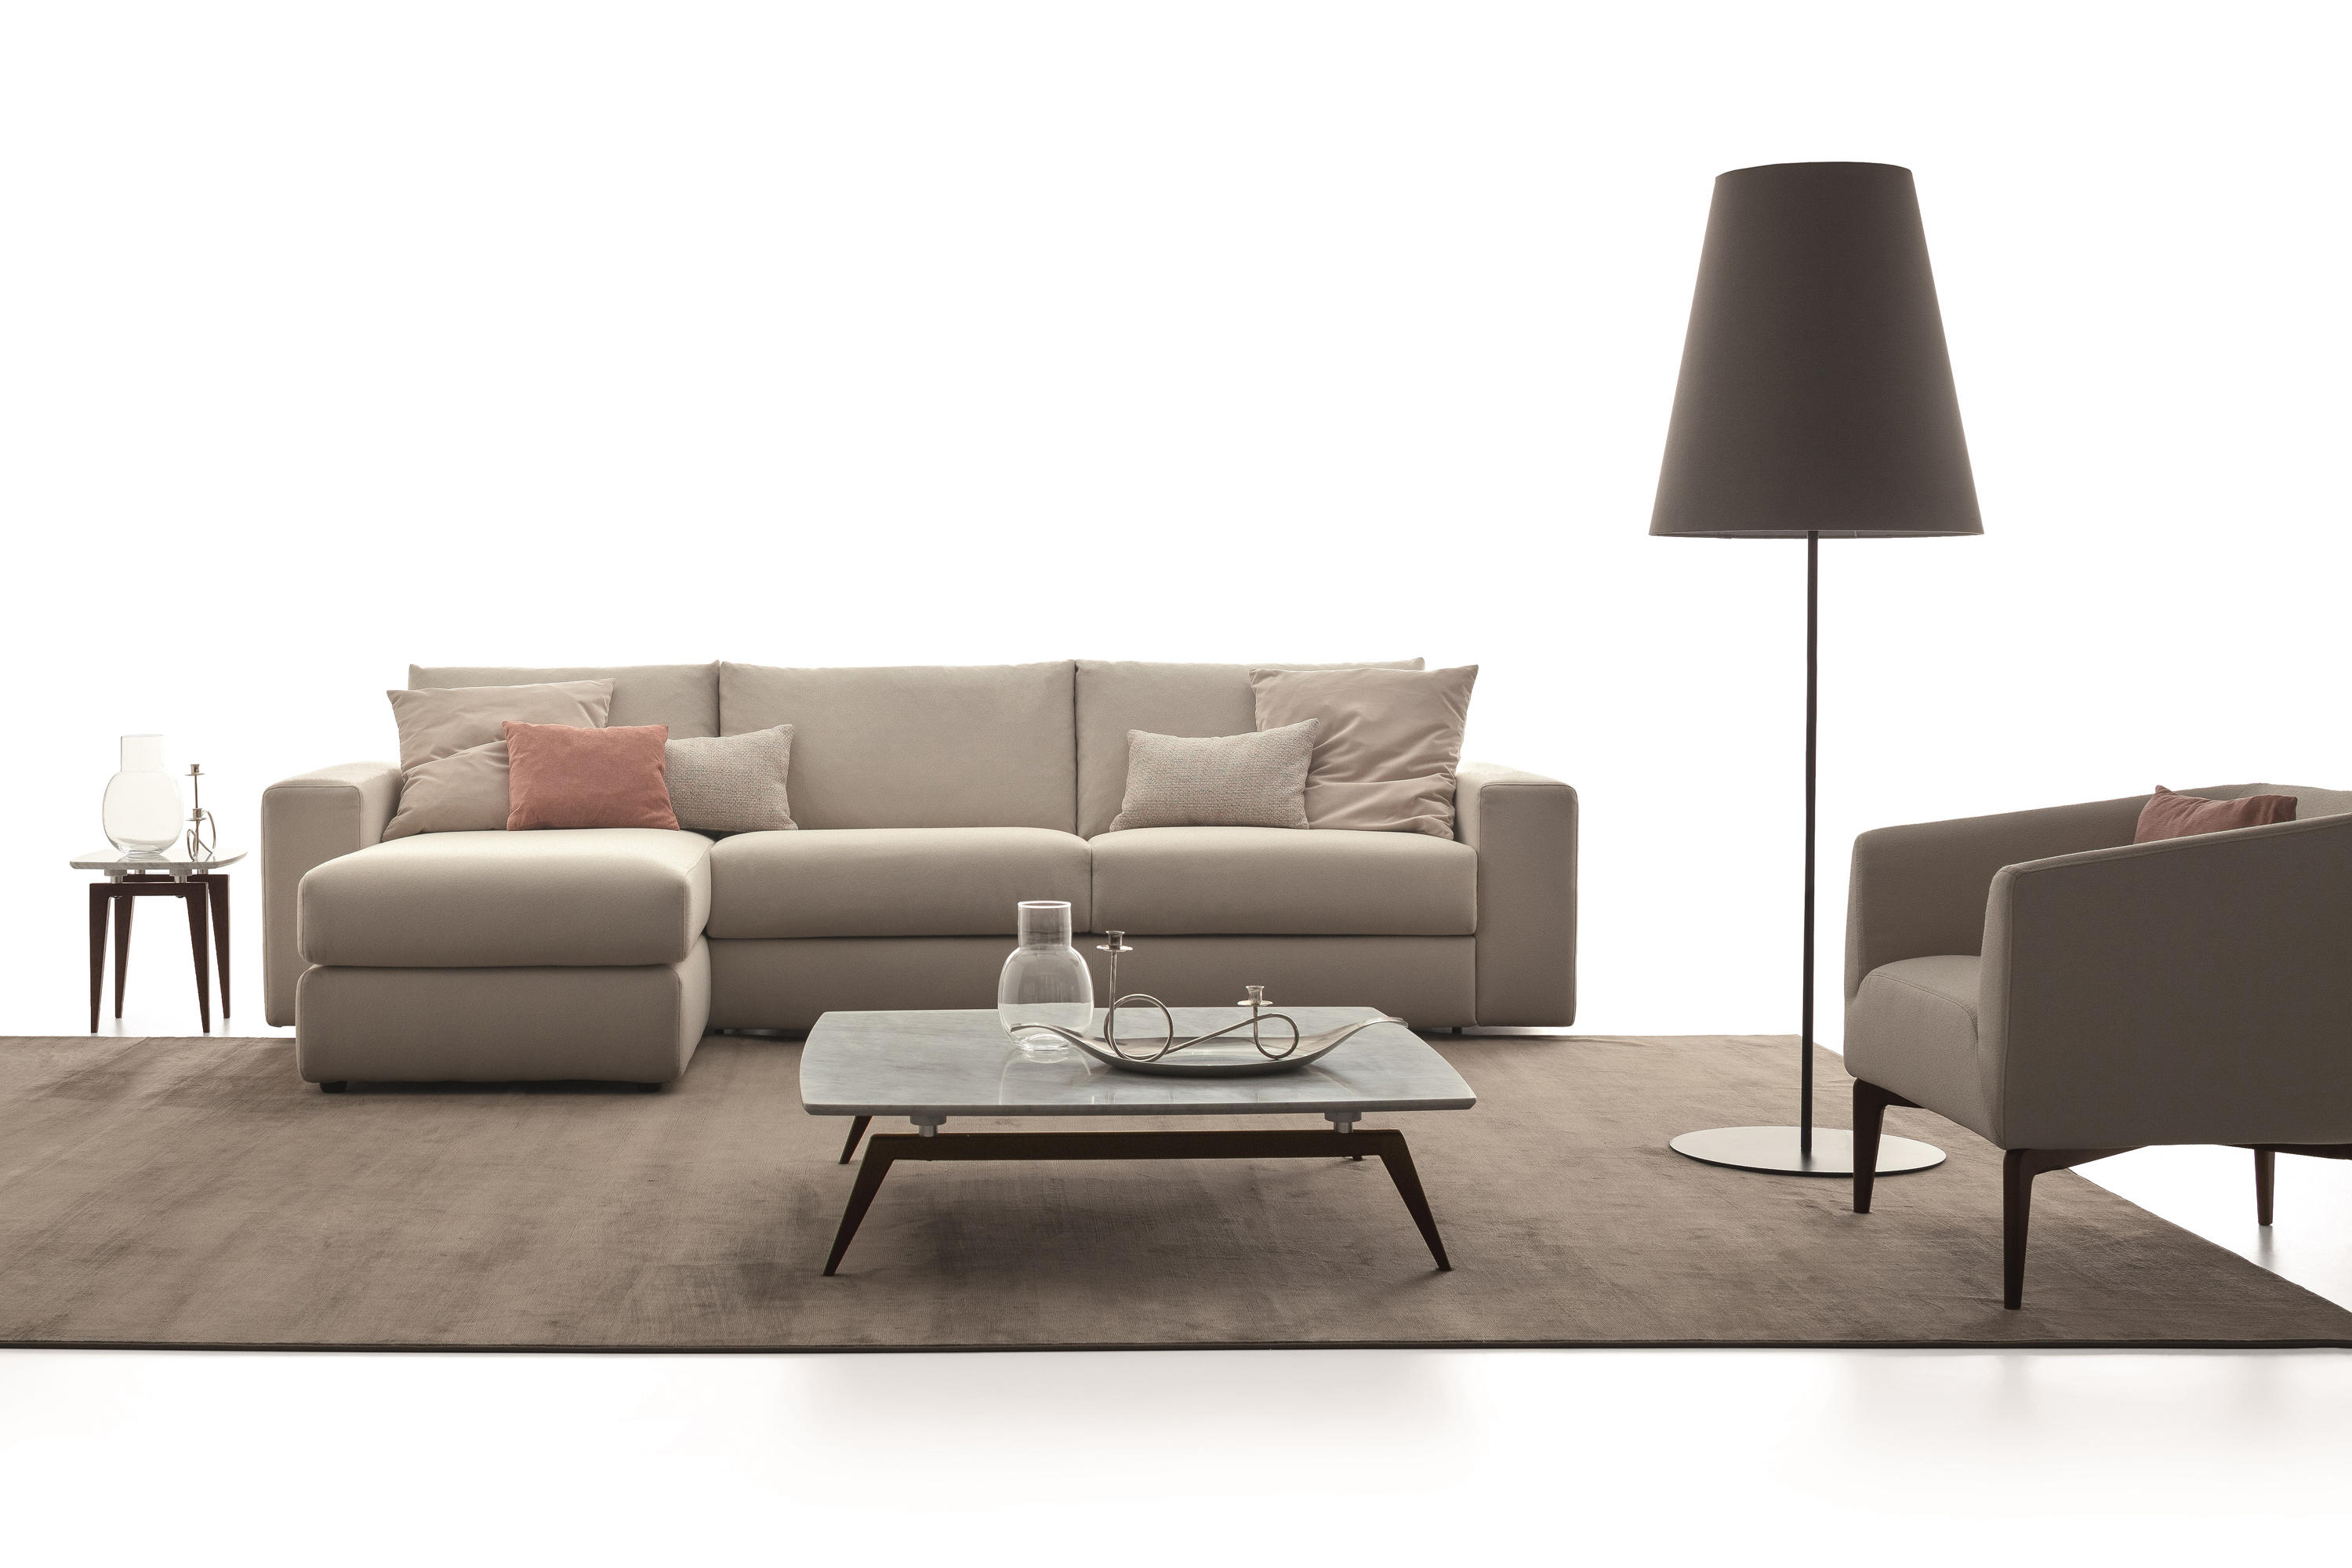 Freedom sofa beds by ditre italia architonic for Sofa bed freedom